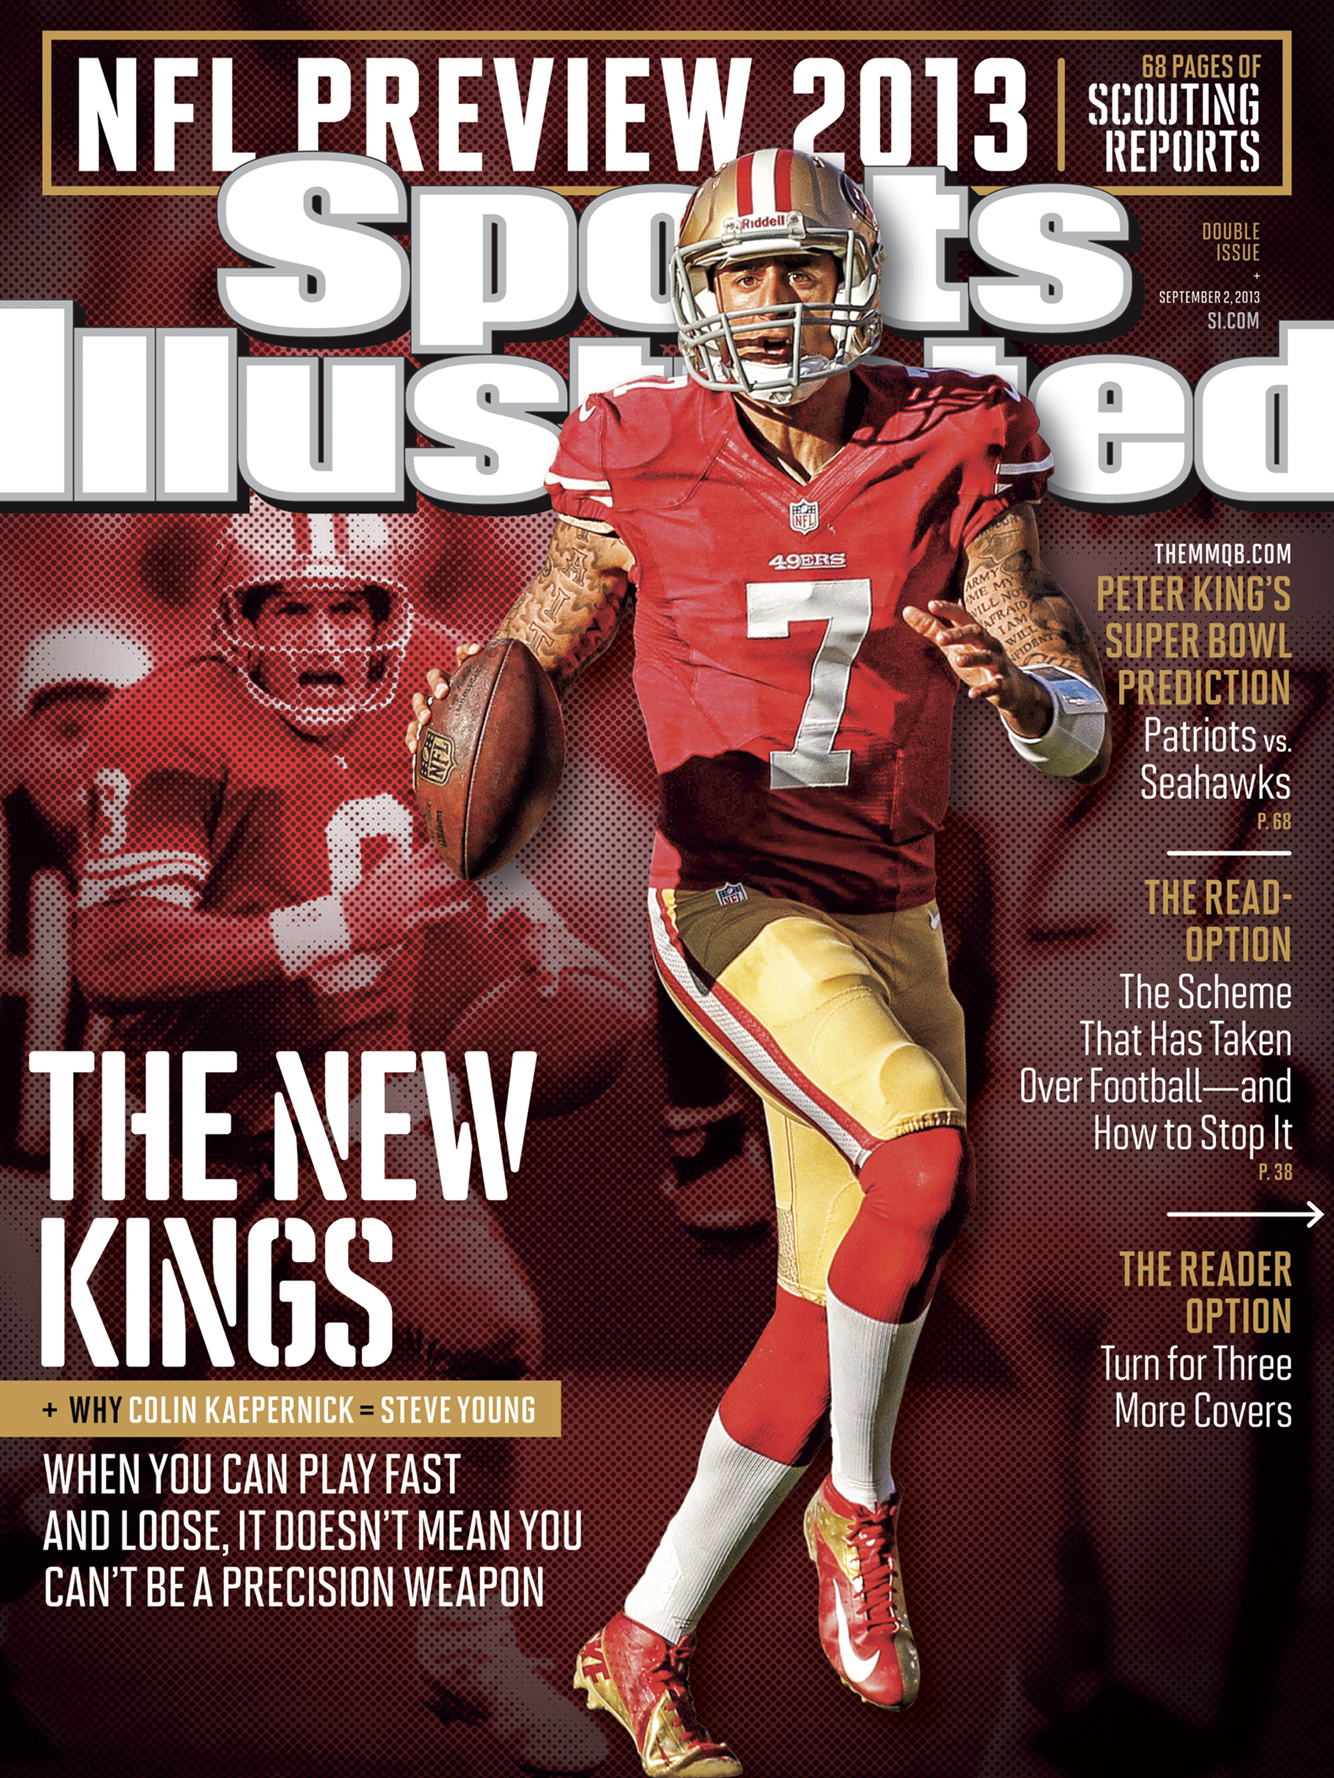 Catch-up on the latest trades, the latest drafts and the latest injury news on Sports Illustrated, an online magazine covering all of America's biggest sports. Sports Illustrated covers news on all major professional and college level sports in the country, offering up-to-date information on all of them.